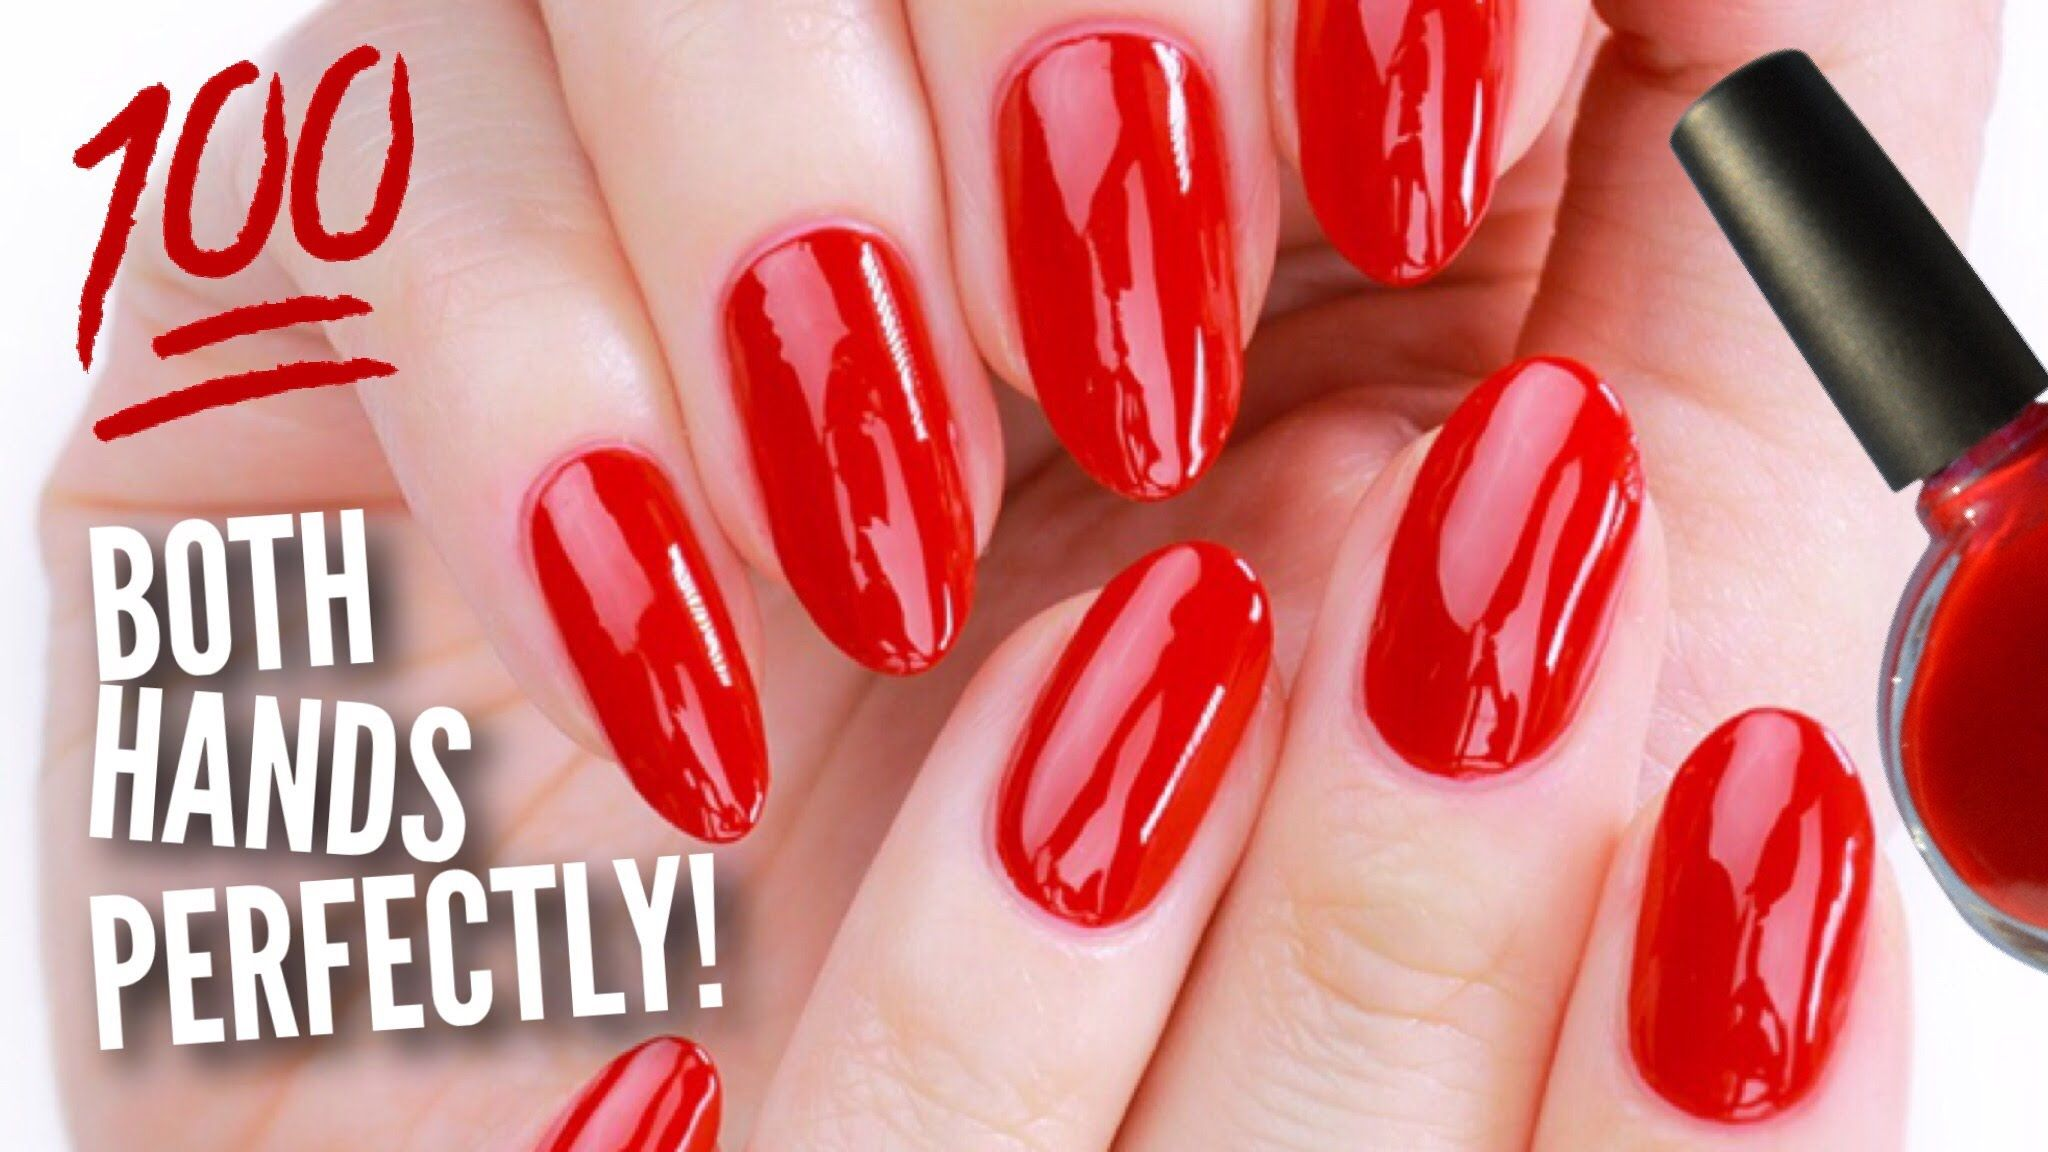 Paint the nails on your OTHER hand perfectly! This video is HIGHLY ...